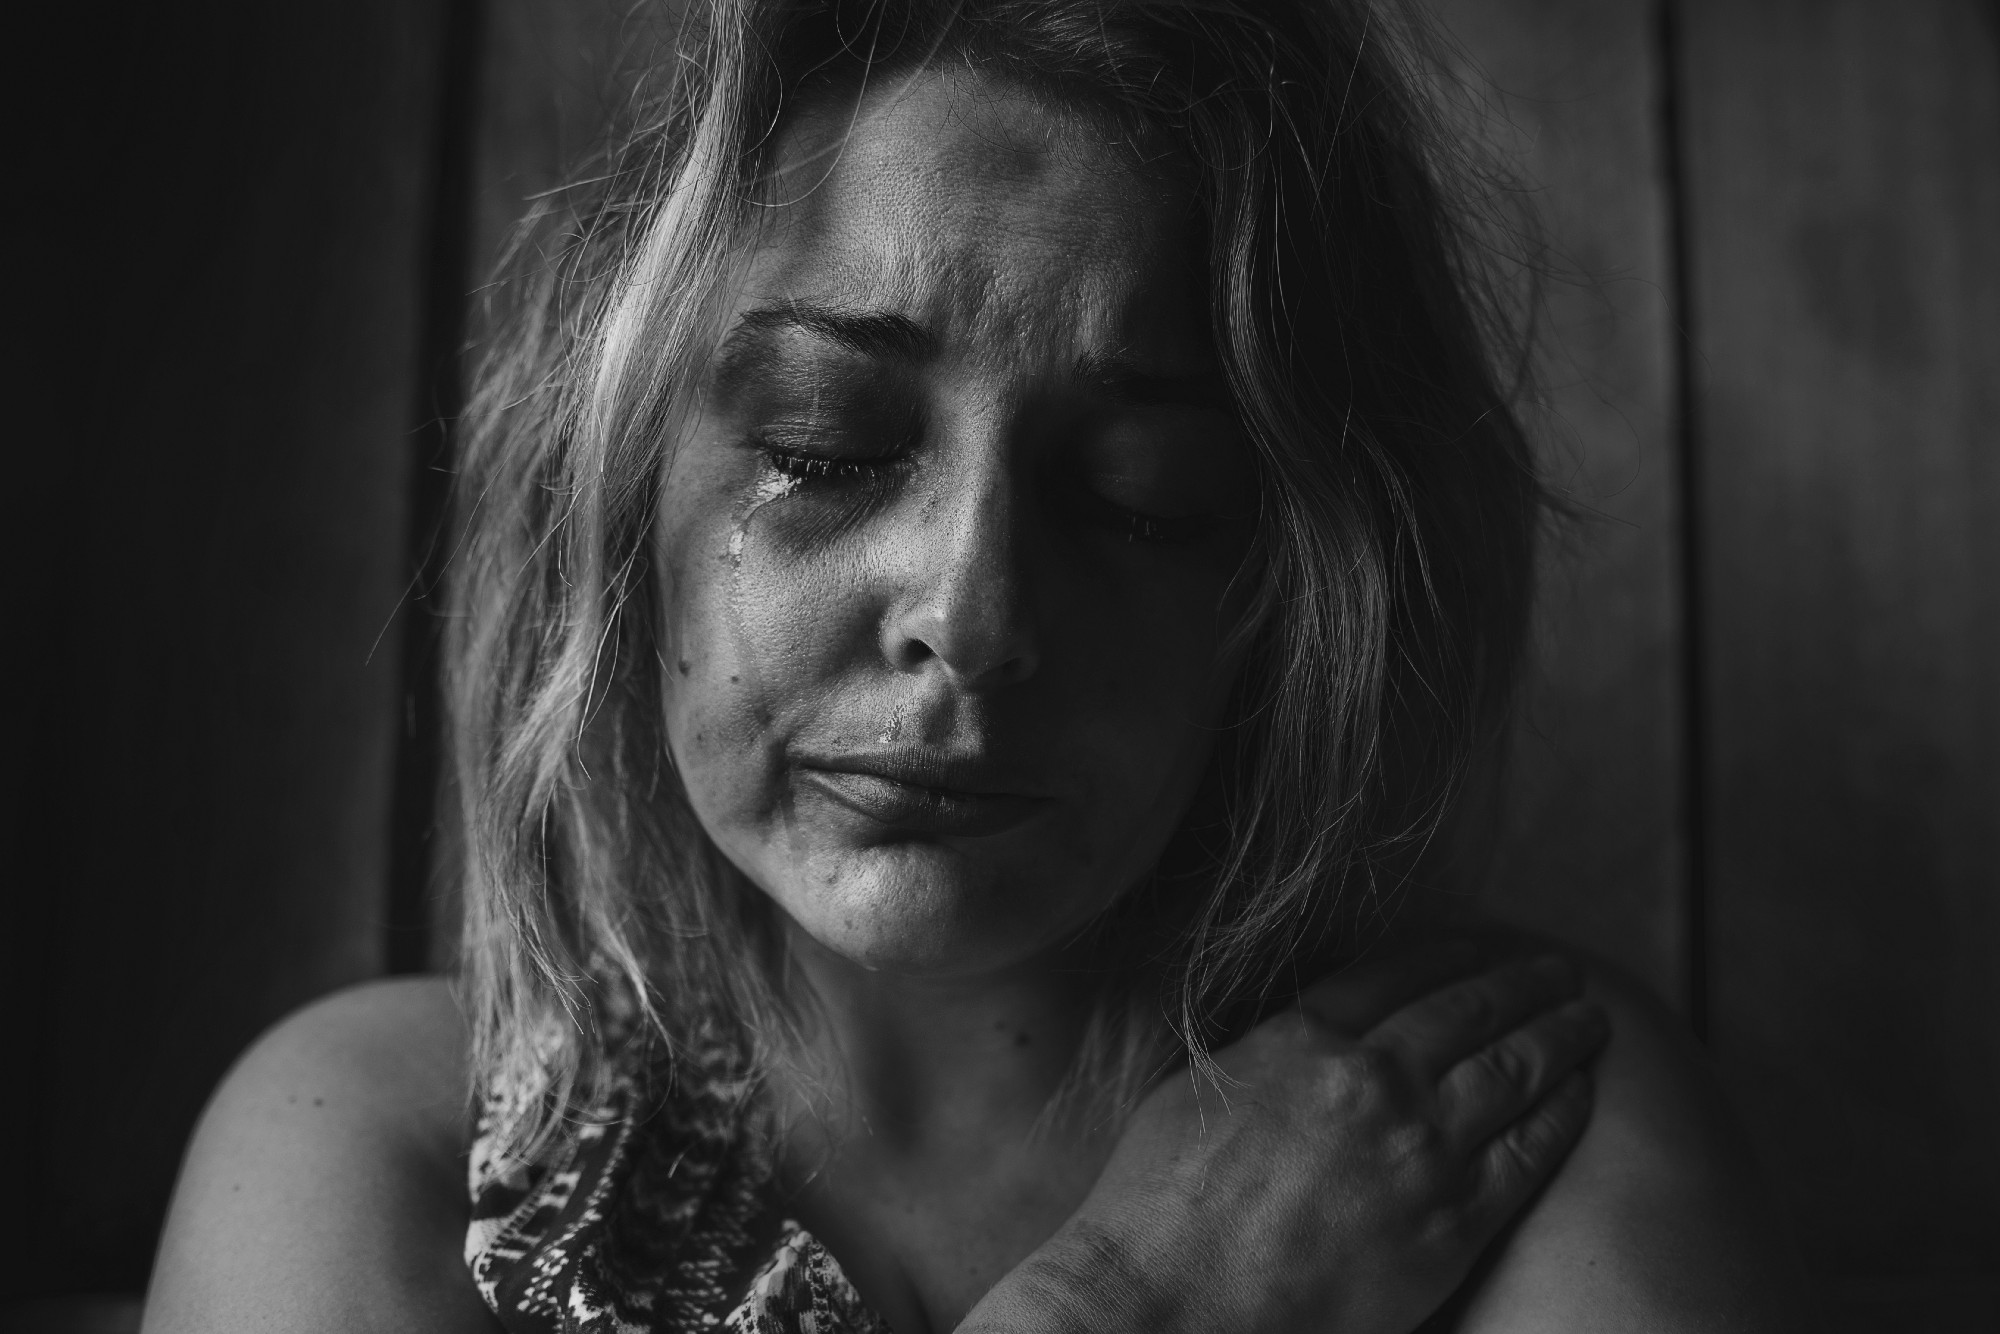 Black and white image of woman with long hair, downcast eyes, and tear streaked face